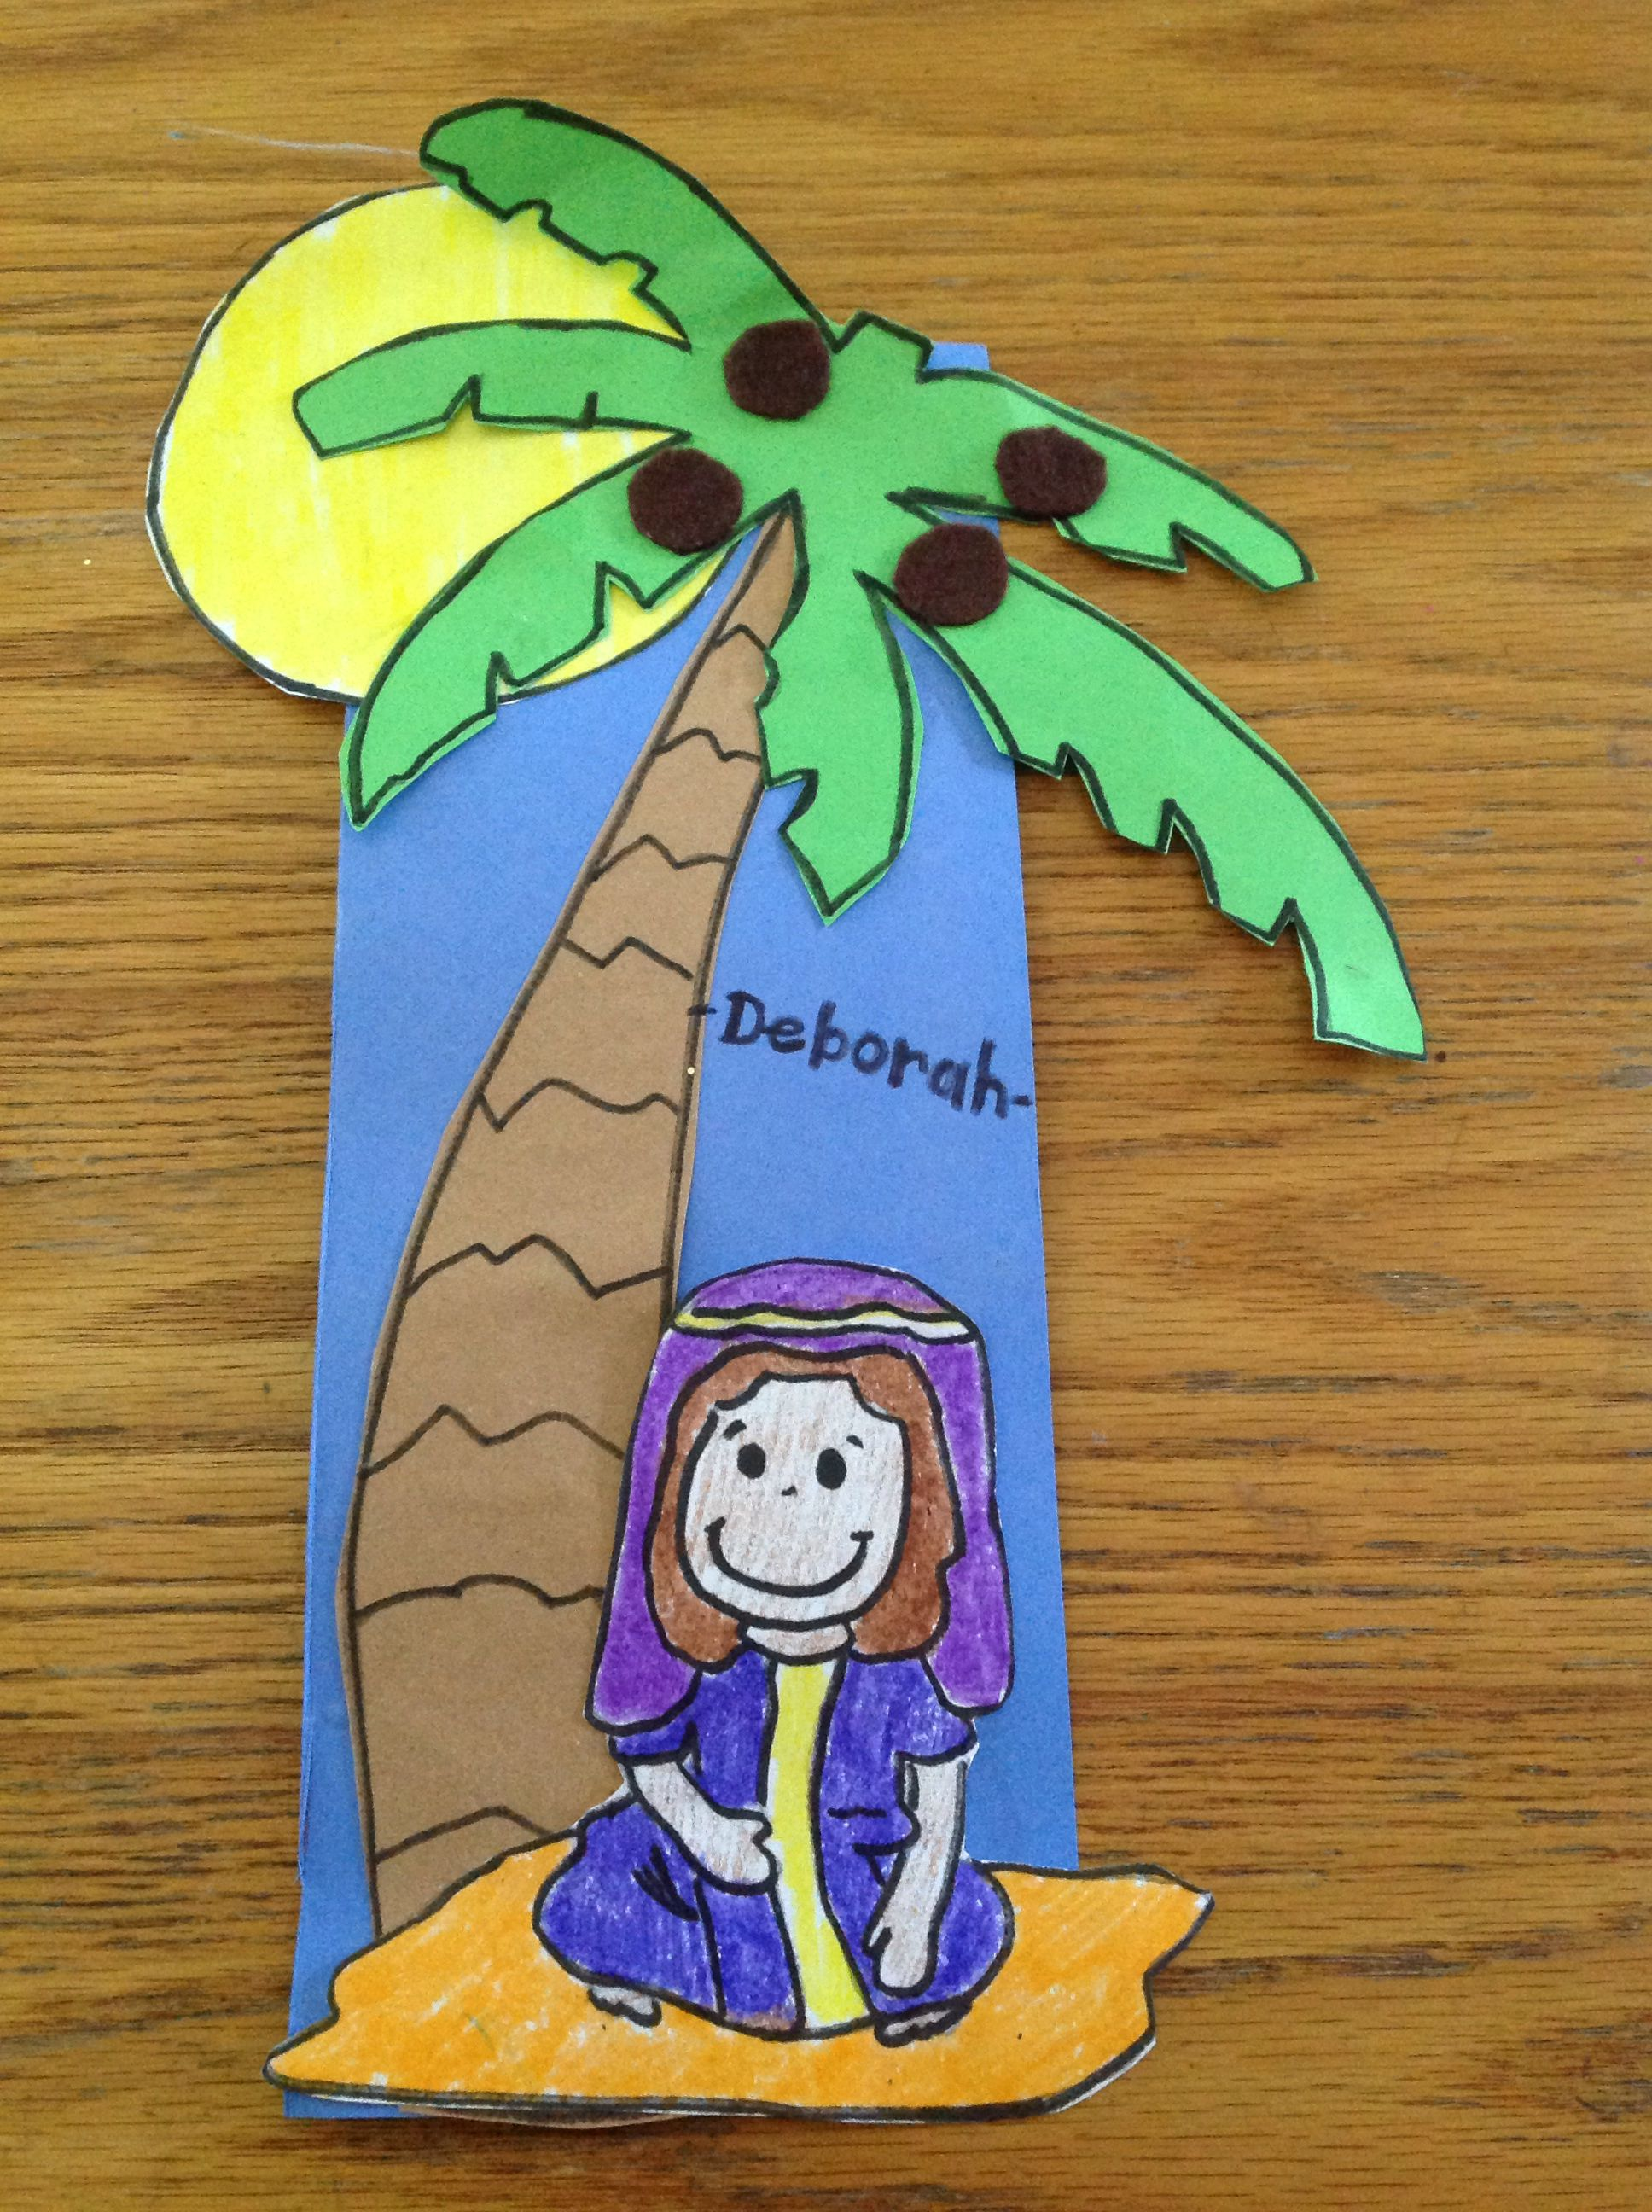 Deborah bible craft by lety sunday school pinterest for Bible school crafts for toddlers